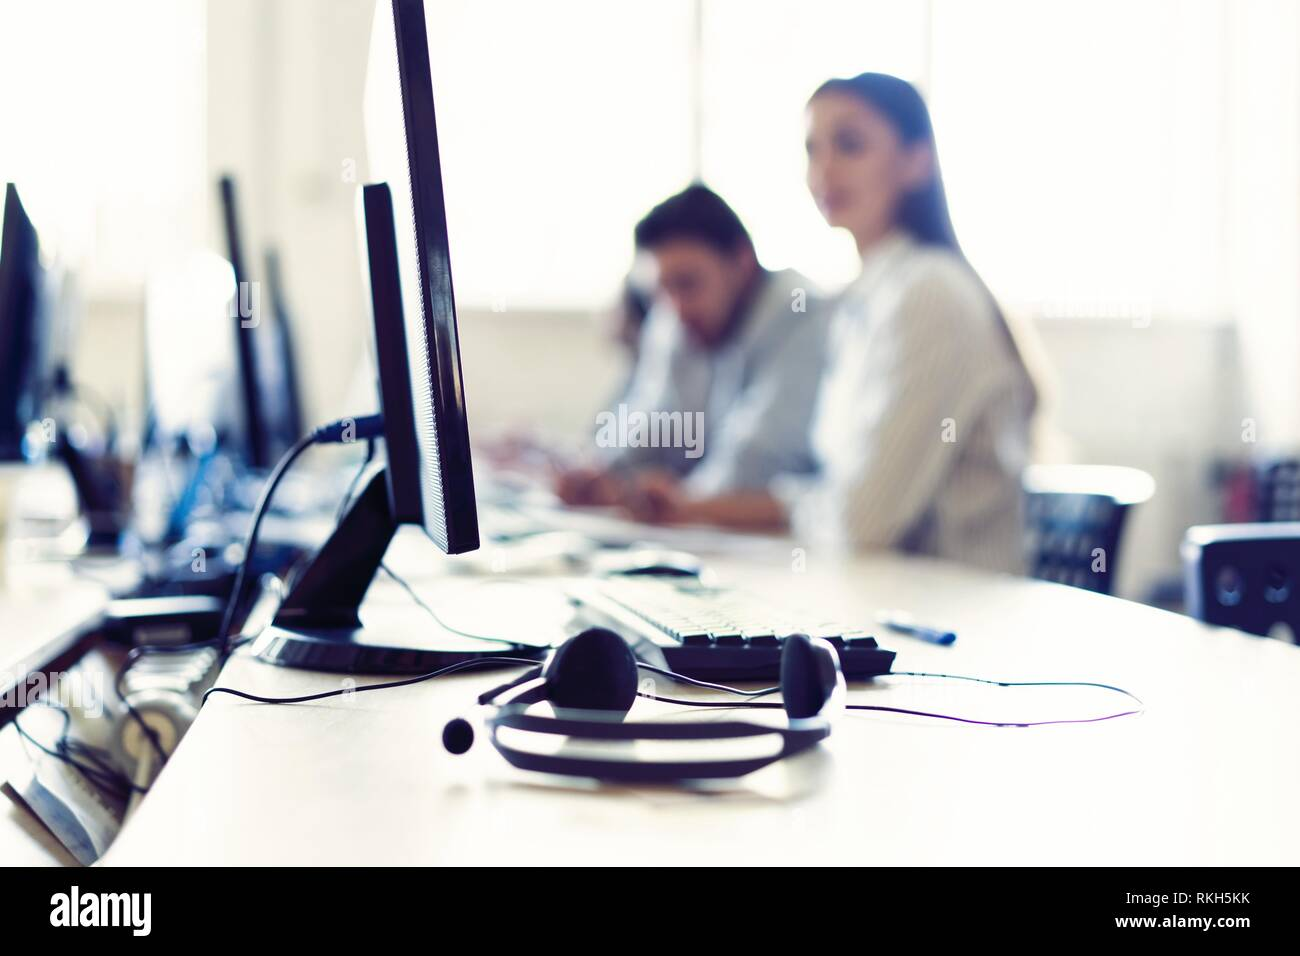 We are waiting for your call. Call center workers are working at modern office. Stock Photo